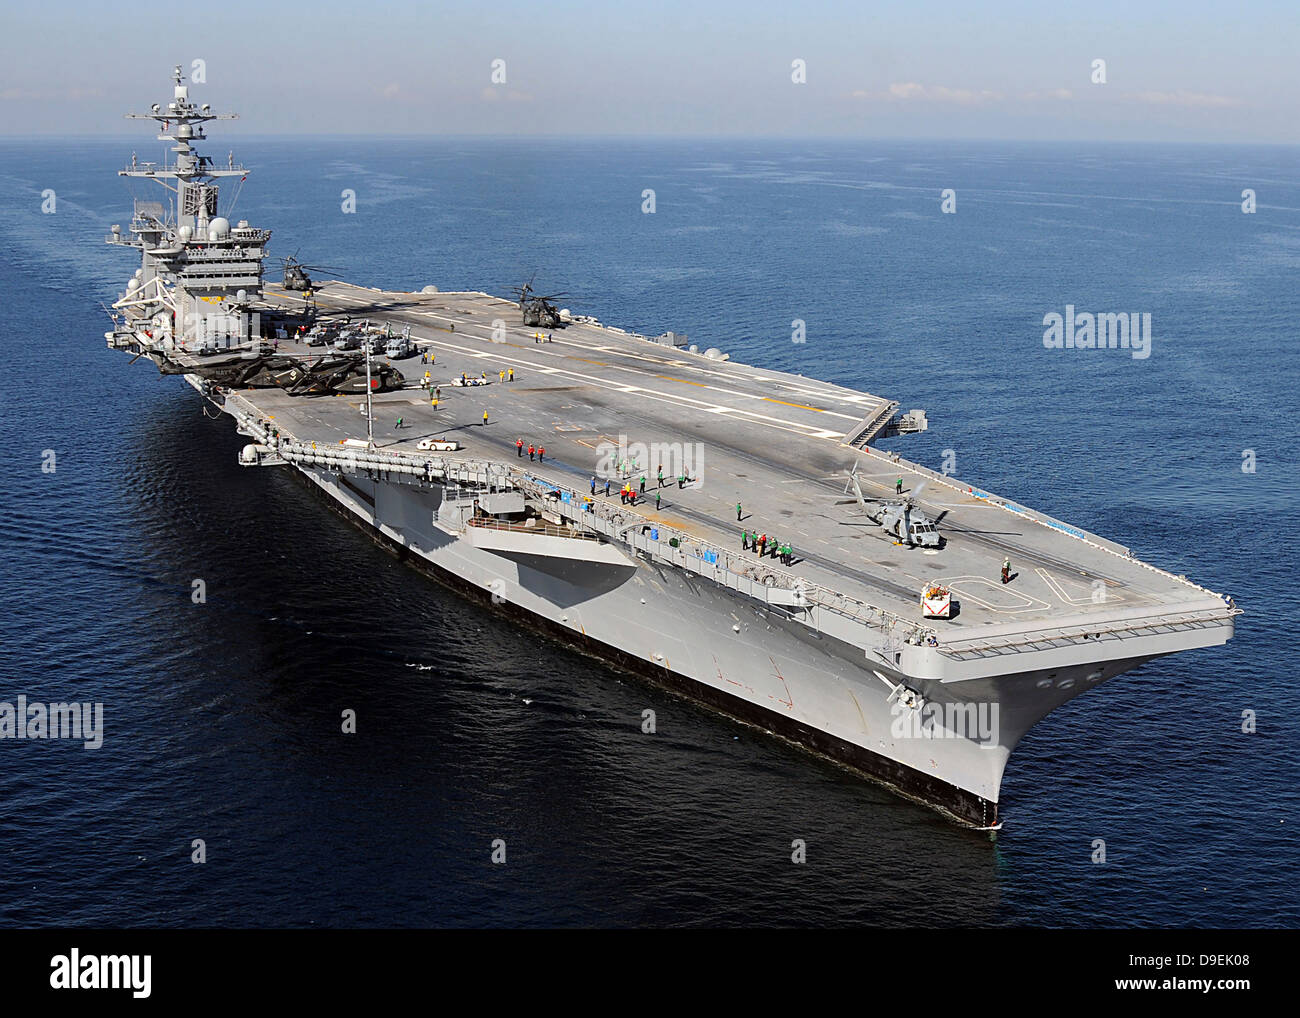 Aircraft carrier USS Carl Vinson. - Stock Image